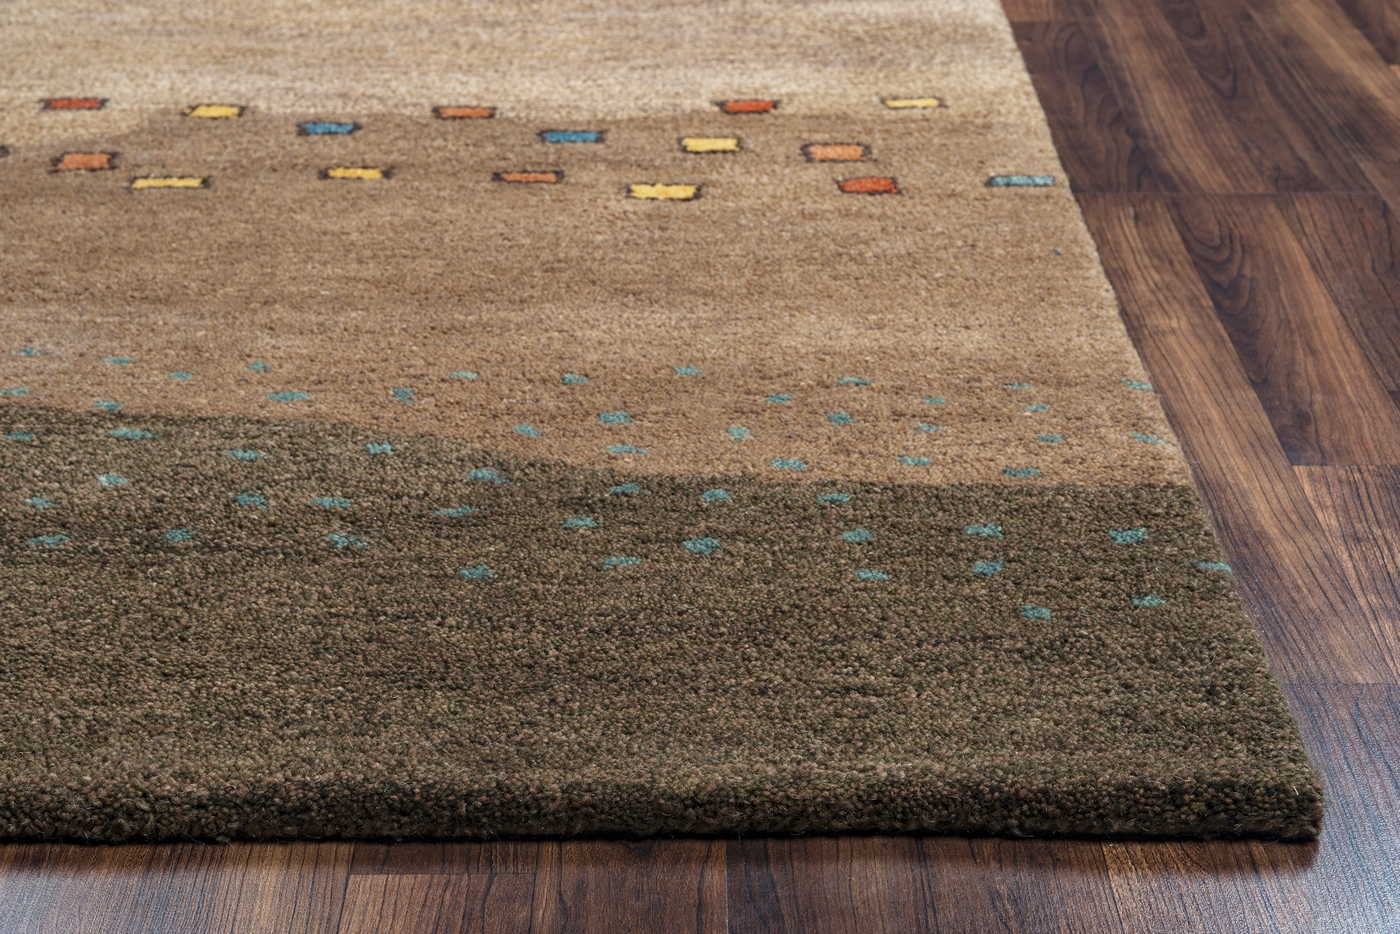 Mojave Abstract Sand Dunes Wool Area Rug In Tan Brown